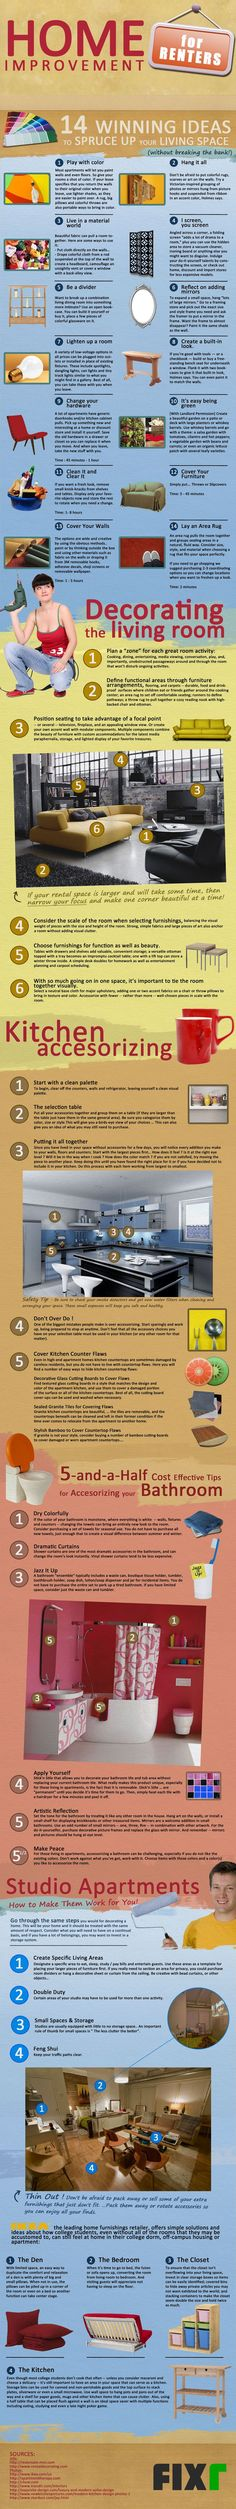 Home Improvement for Renters- Infographic   Miscellaneous